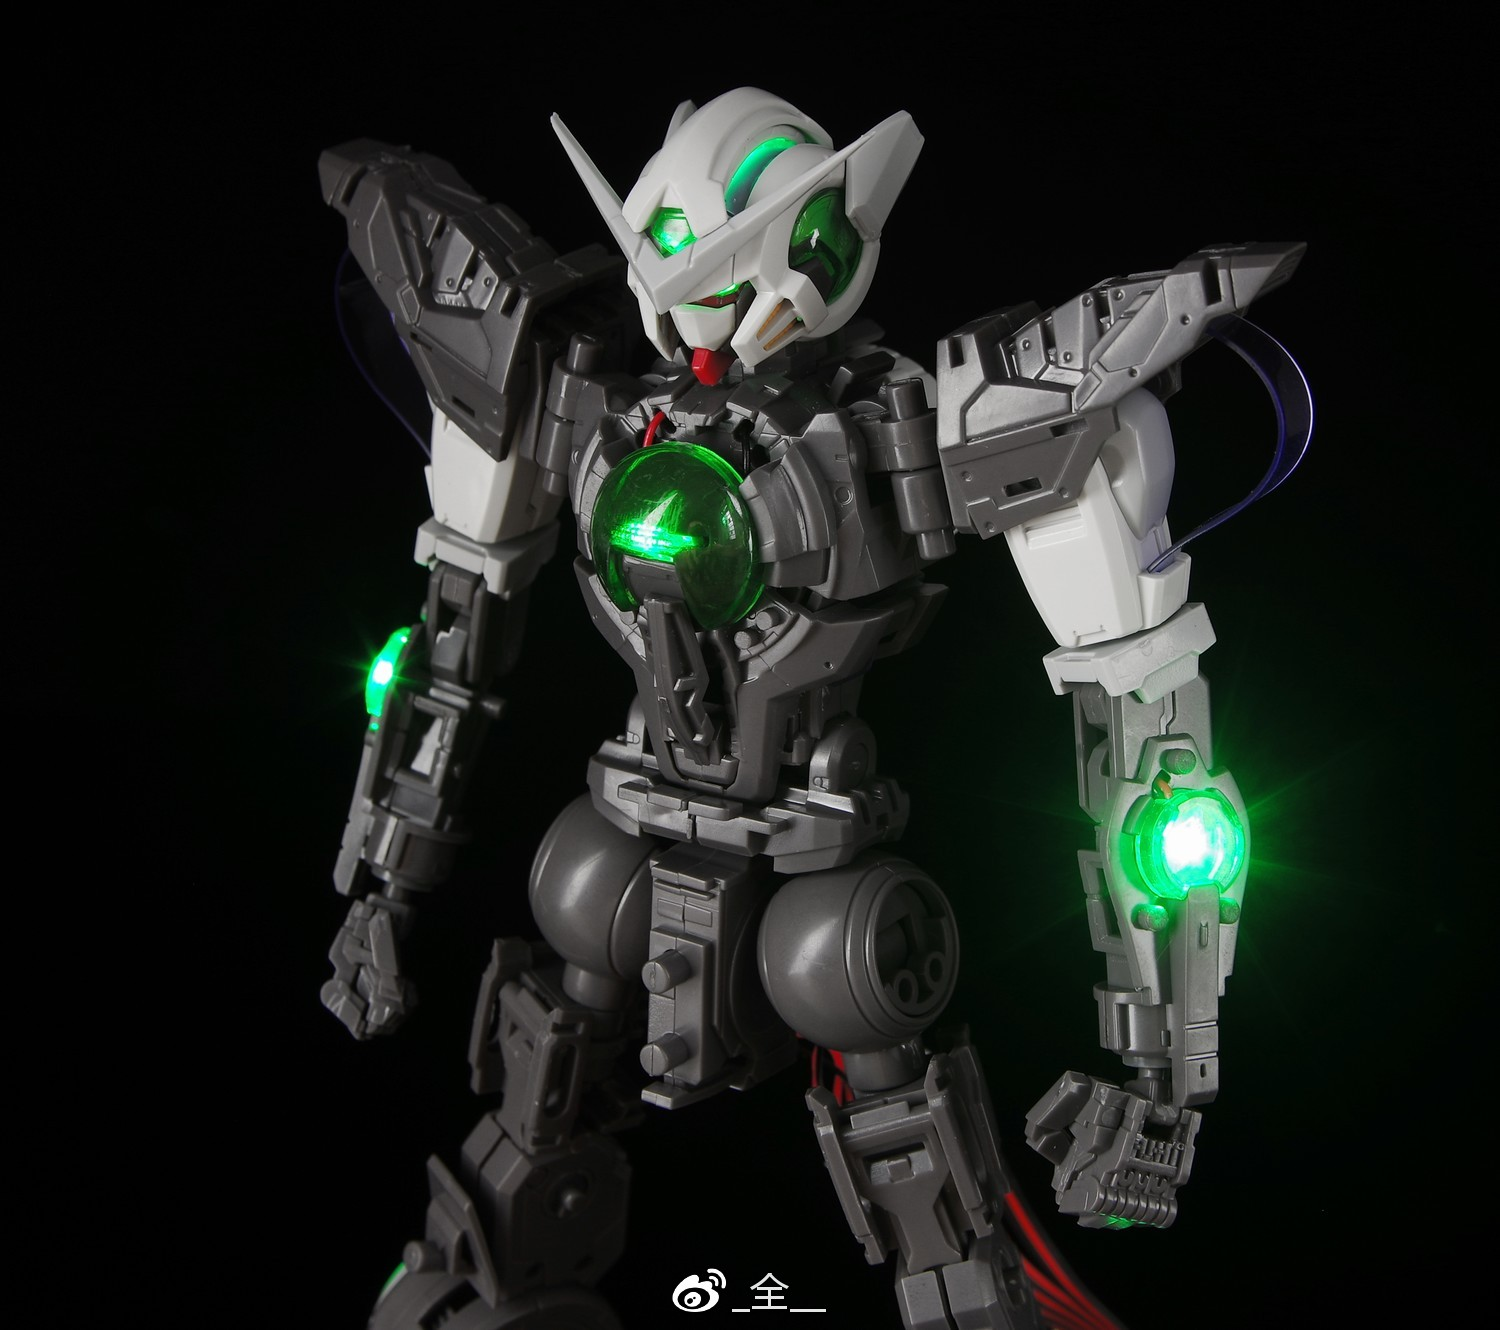 S269_mg_exia_led_hobby_star_inask_034.jpg